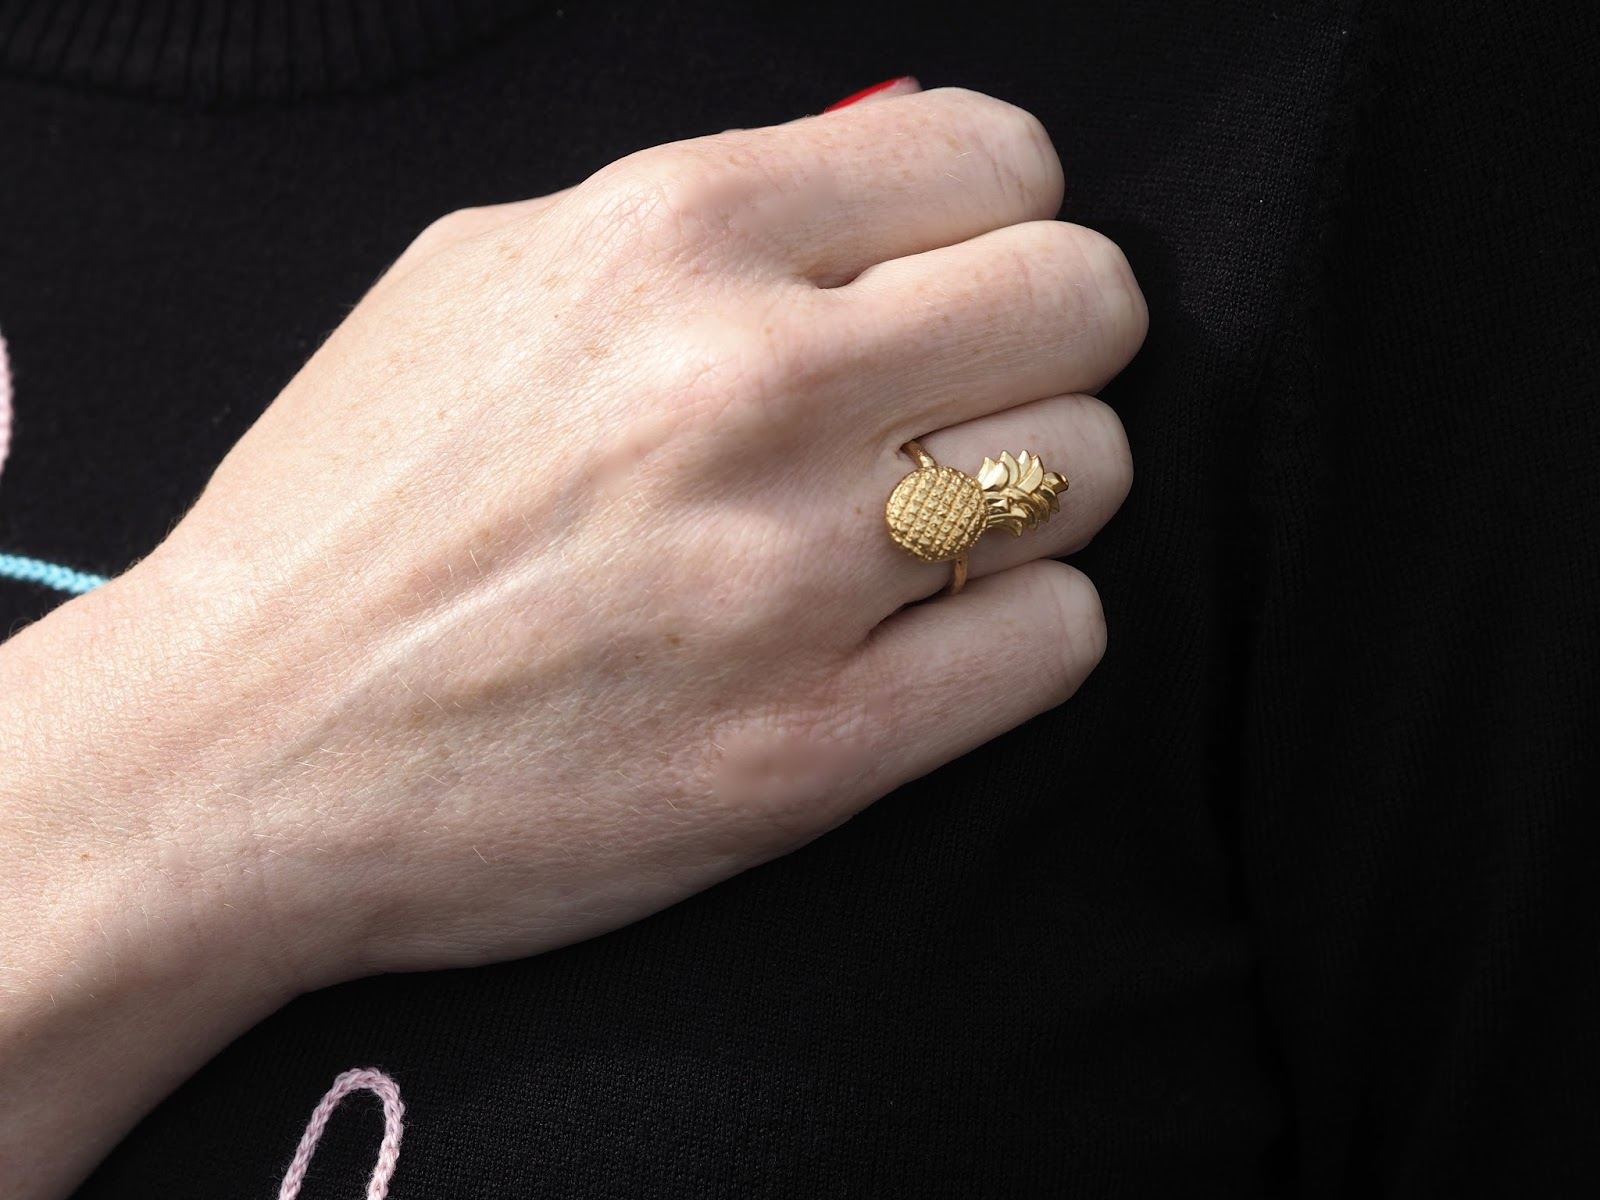 Gold pineapple ring by Danon